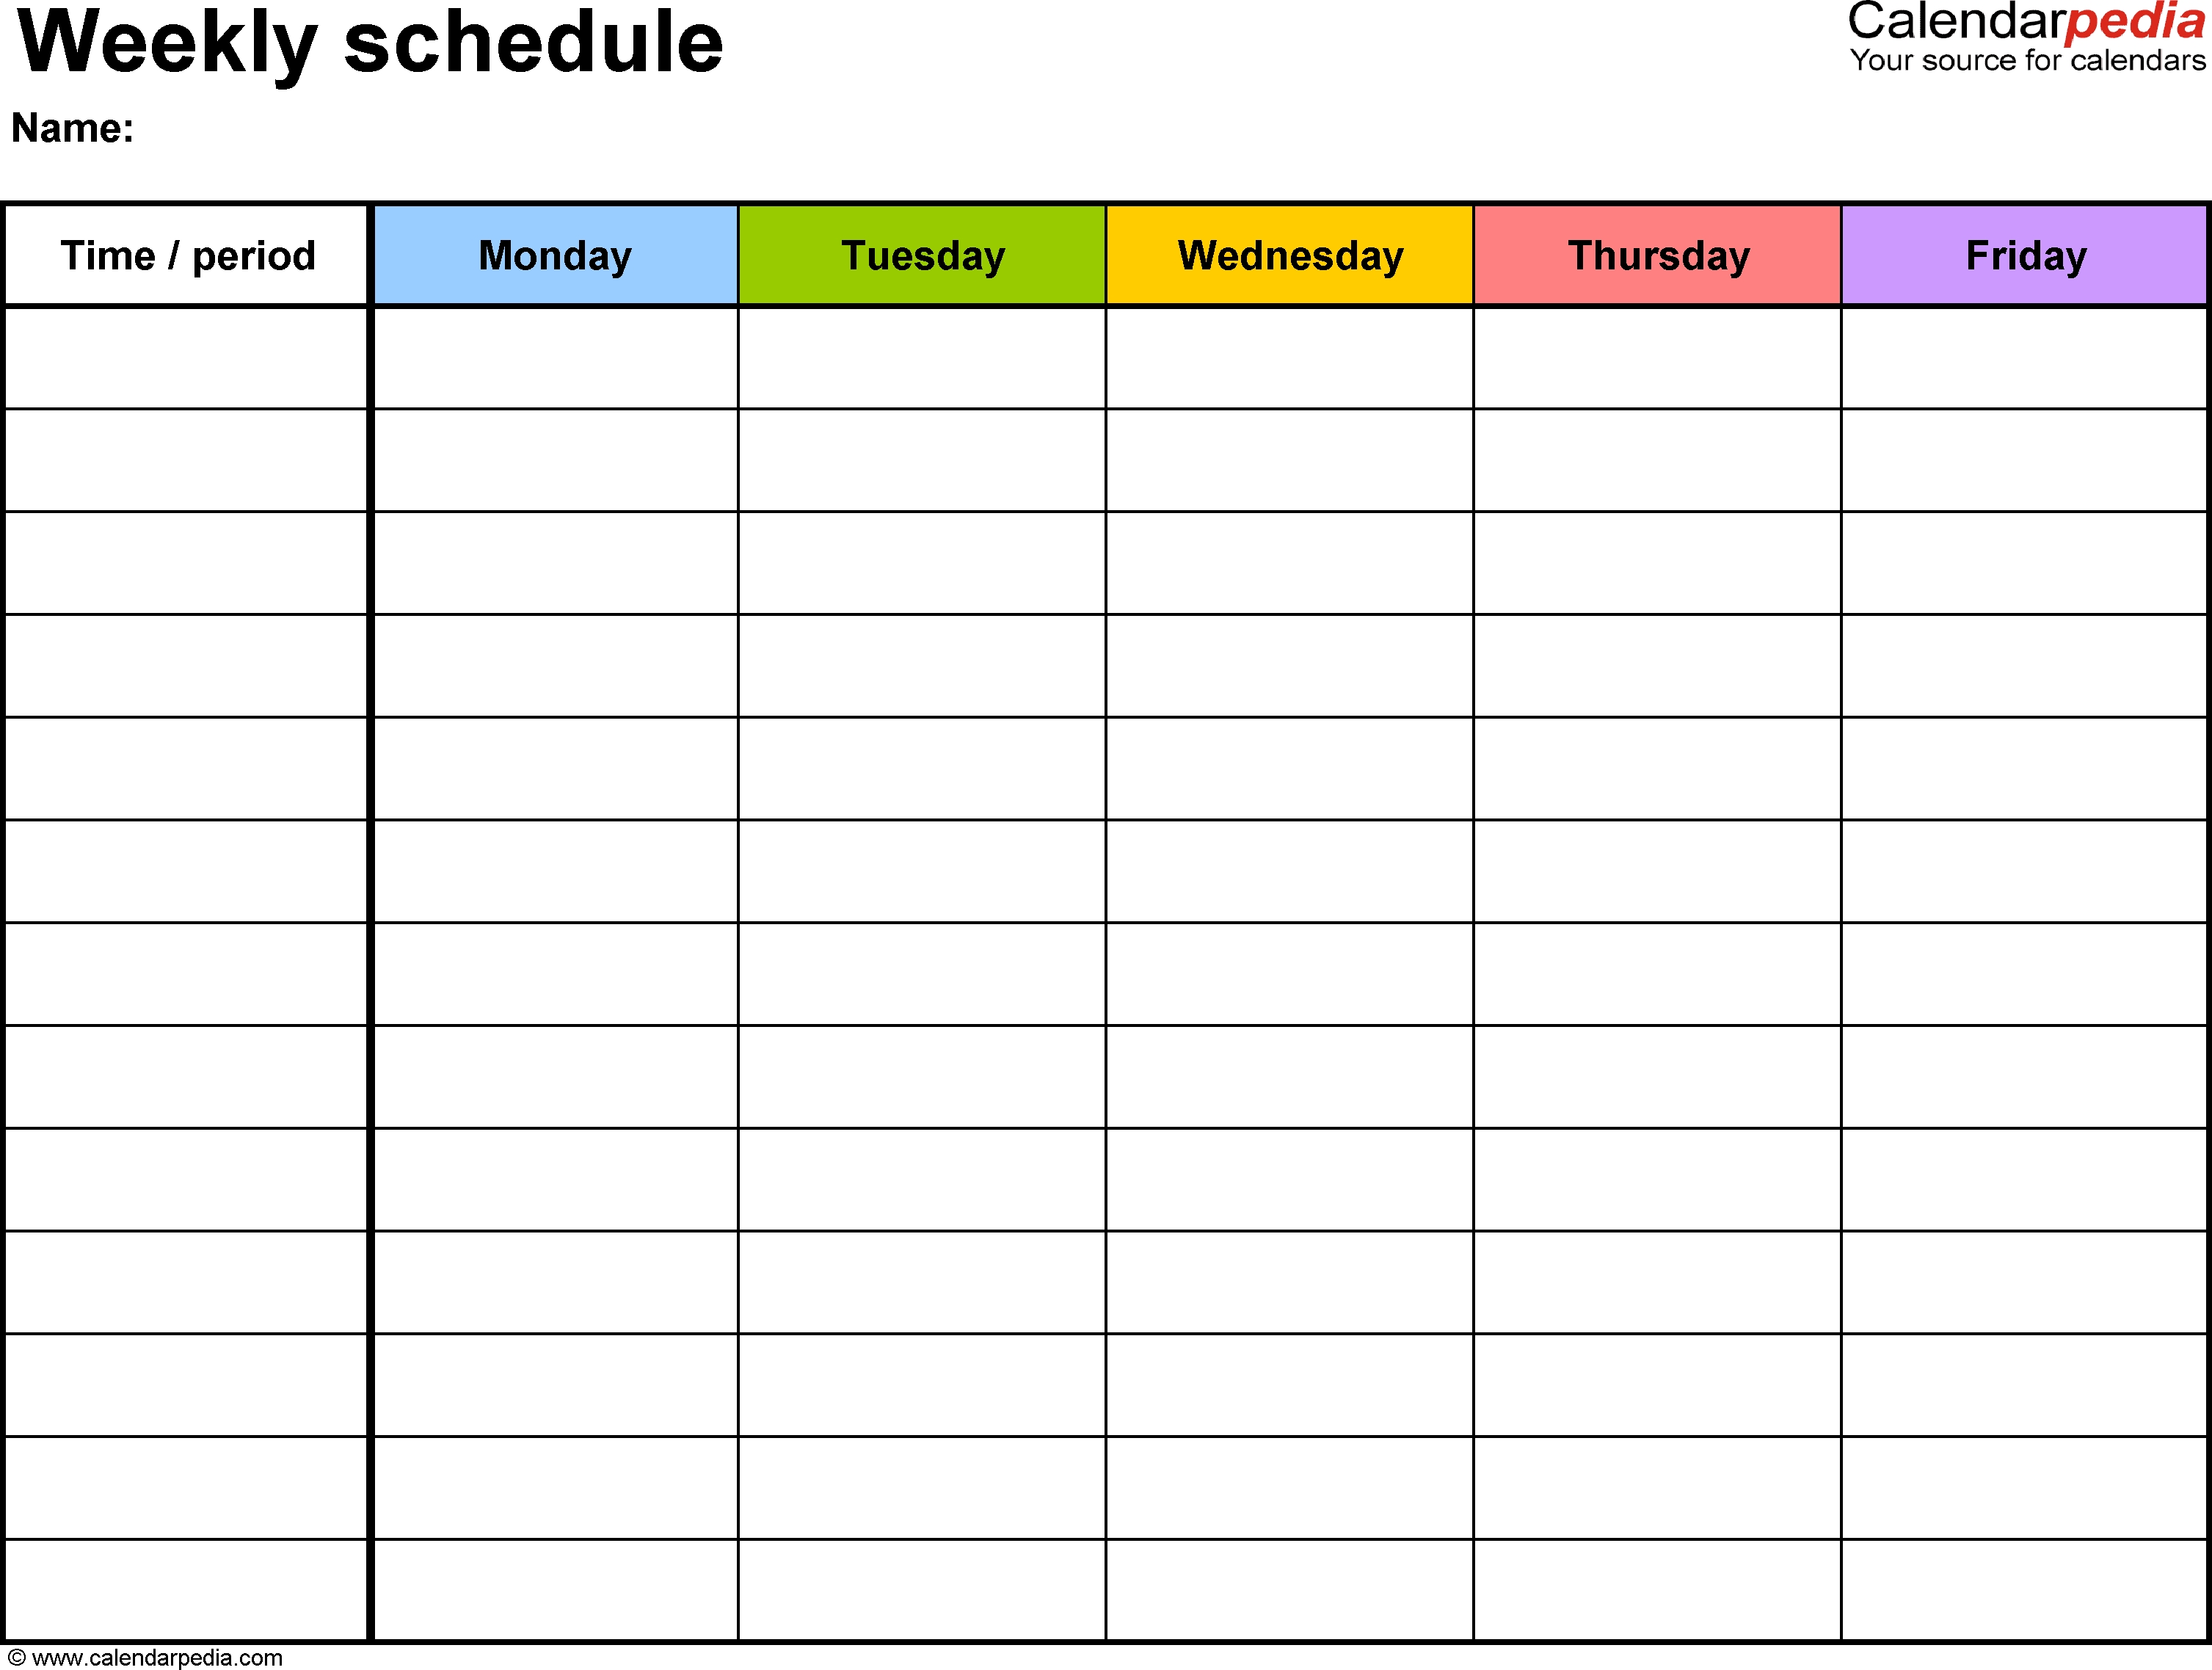 Free Weekly Schedule Templates For Word - 18 Templates pertaining to Printable Blank Weekly Calendars Templates